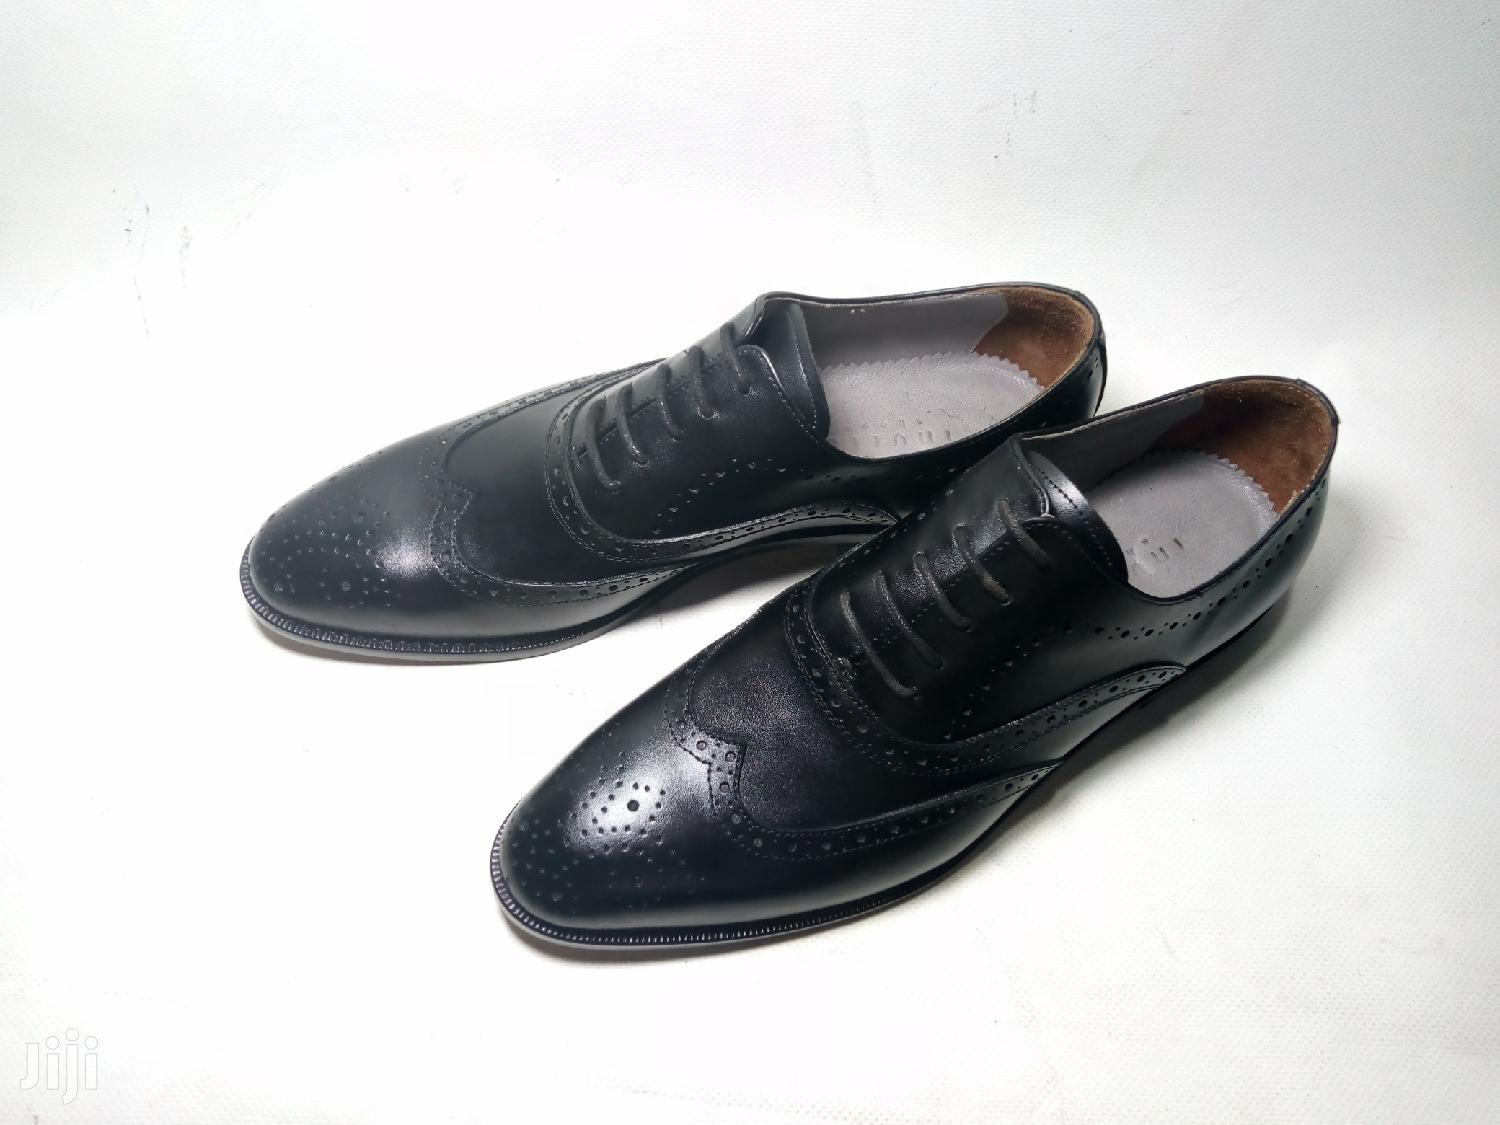 Full Oxford Wingtip Brogues Men's Shoes | Shoes for sale in Accra Metropolitan, Greater Accra, Ghana